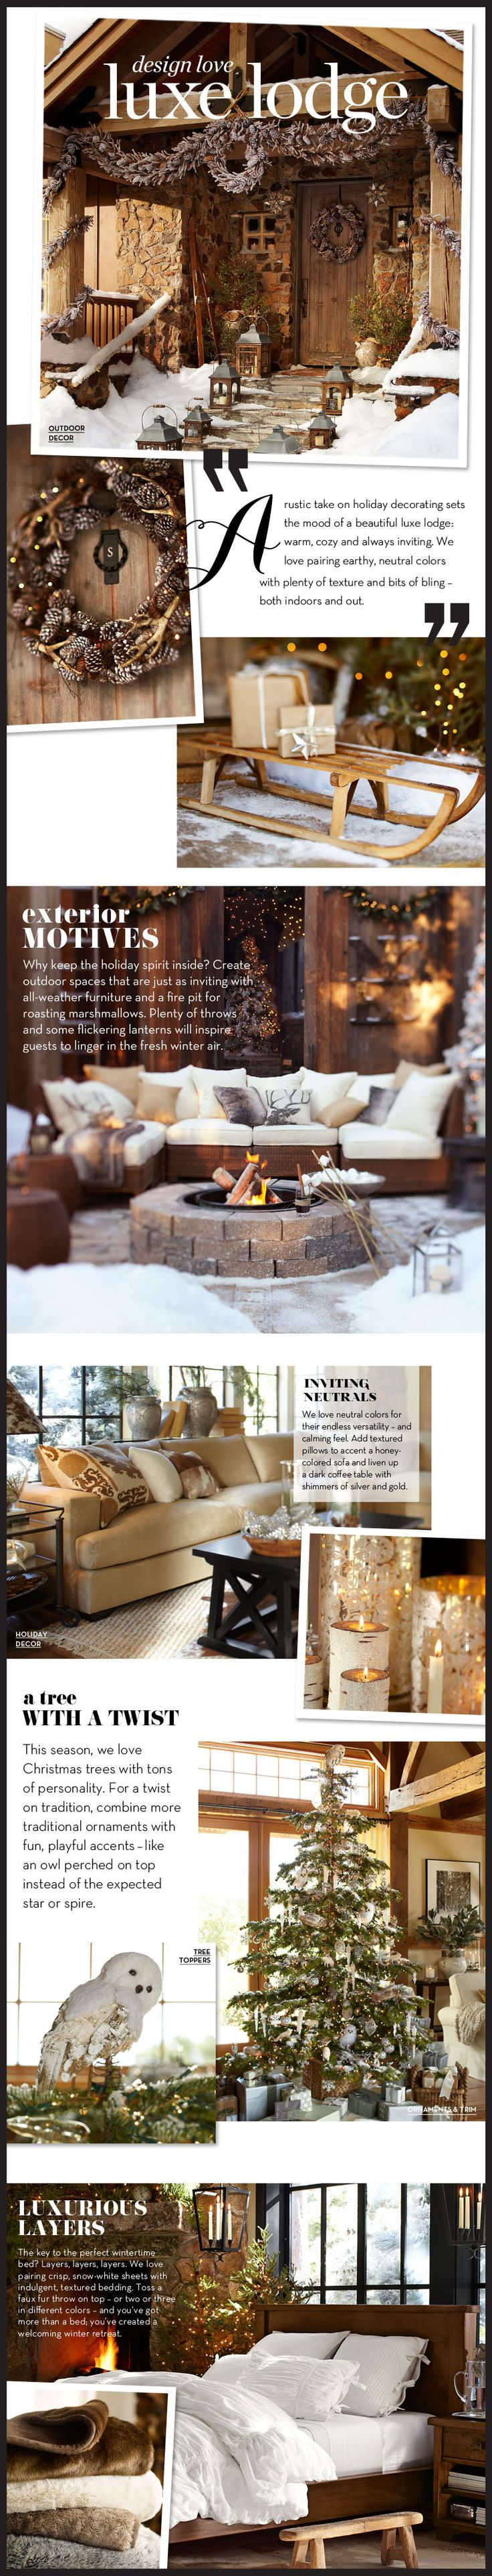 Cozy Cabin Holiday Gift Guide                                                                                                                                                                                 More